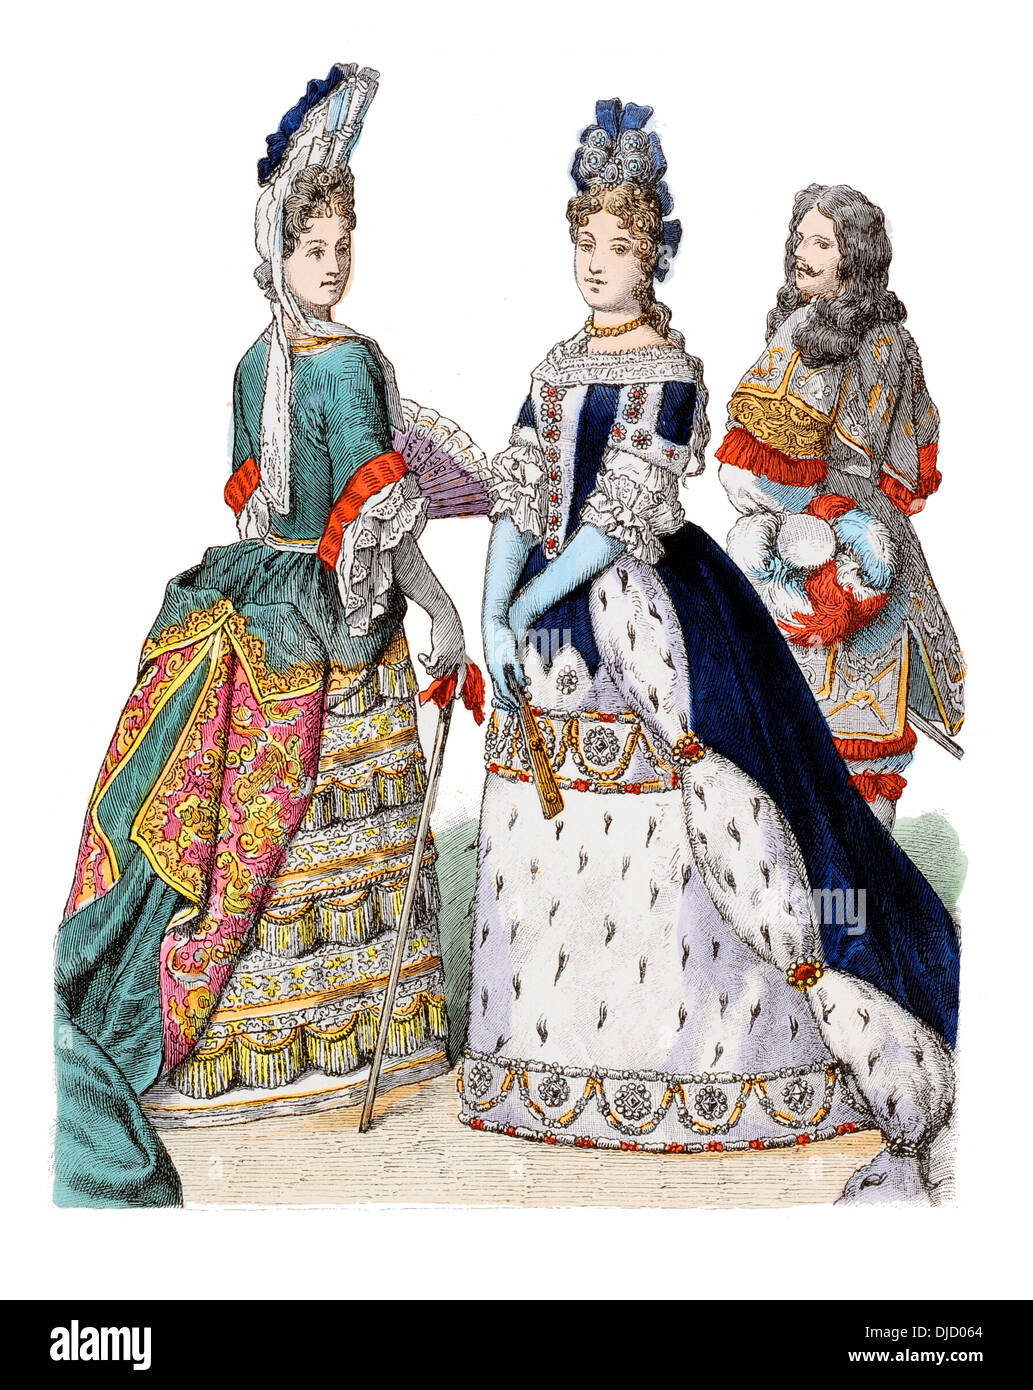 Late 17th century XVII 1600s (Left to right) English Duchess of Portsmouth, Bavaria Maria Anna and a Bavarian palace Guard - Stock Image